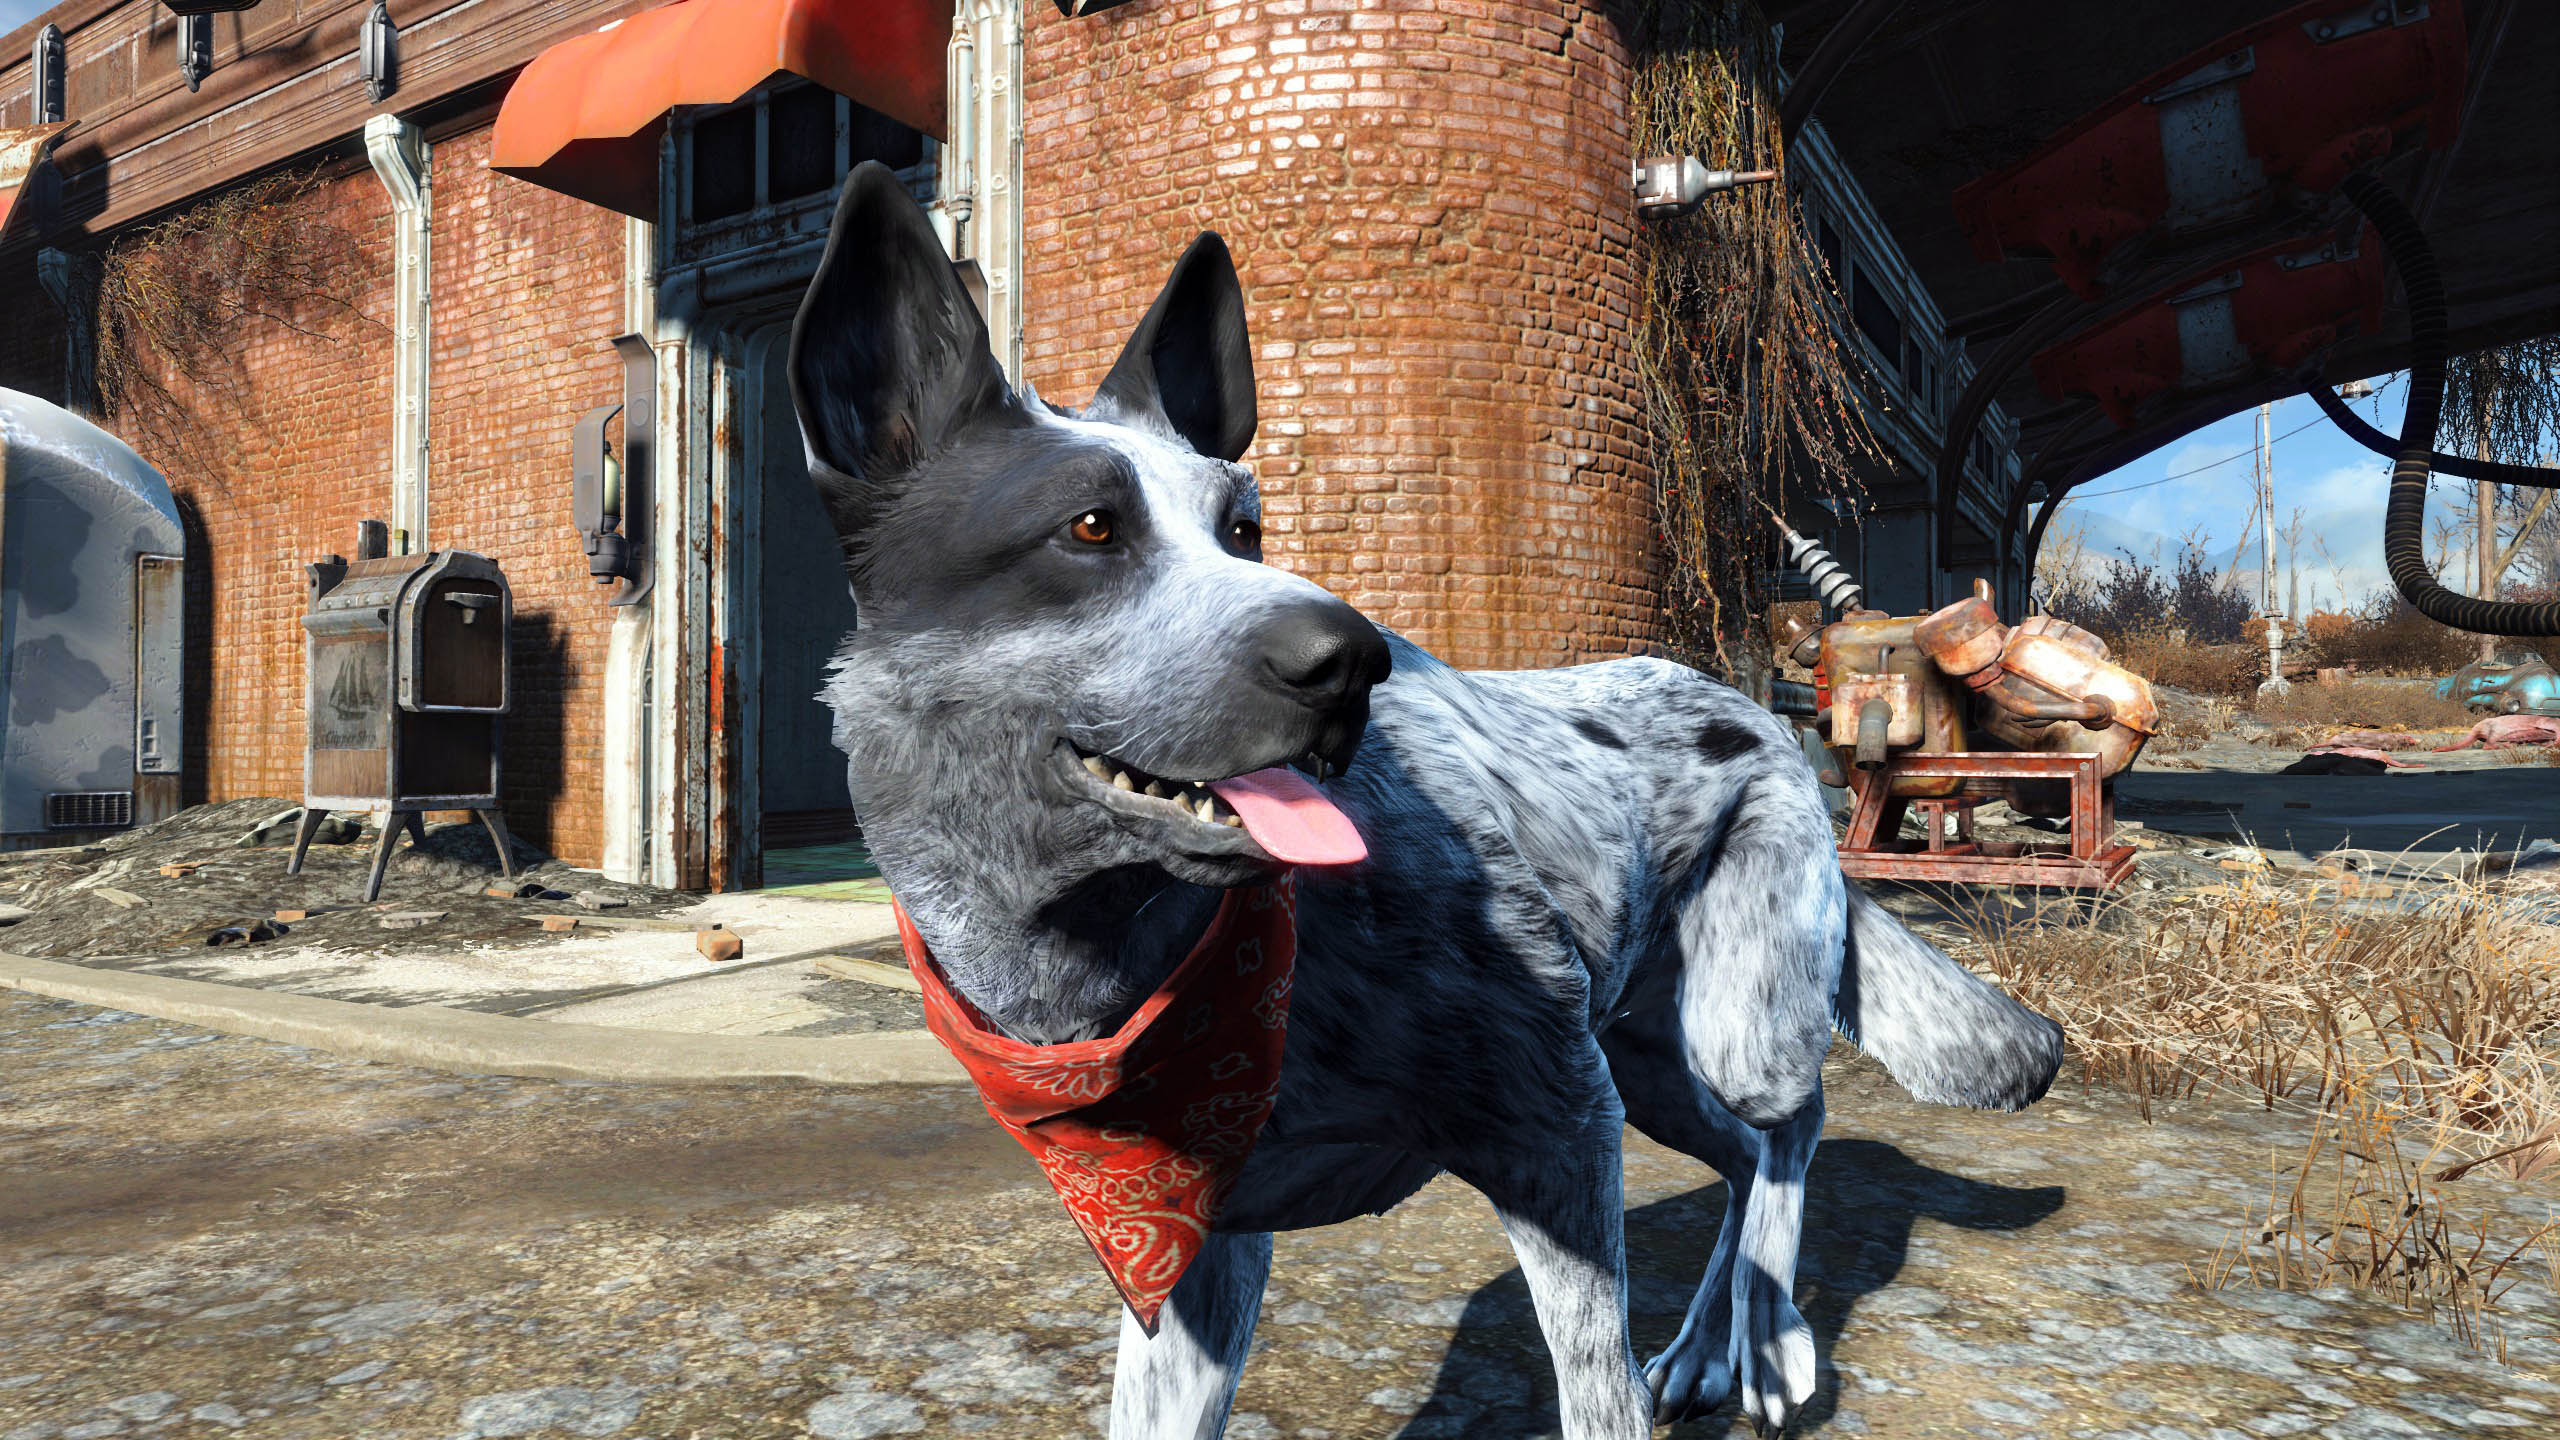 Fallout 4 Fan Mods Their Actual Dog Into The Game